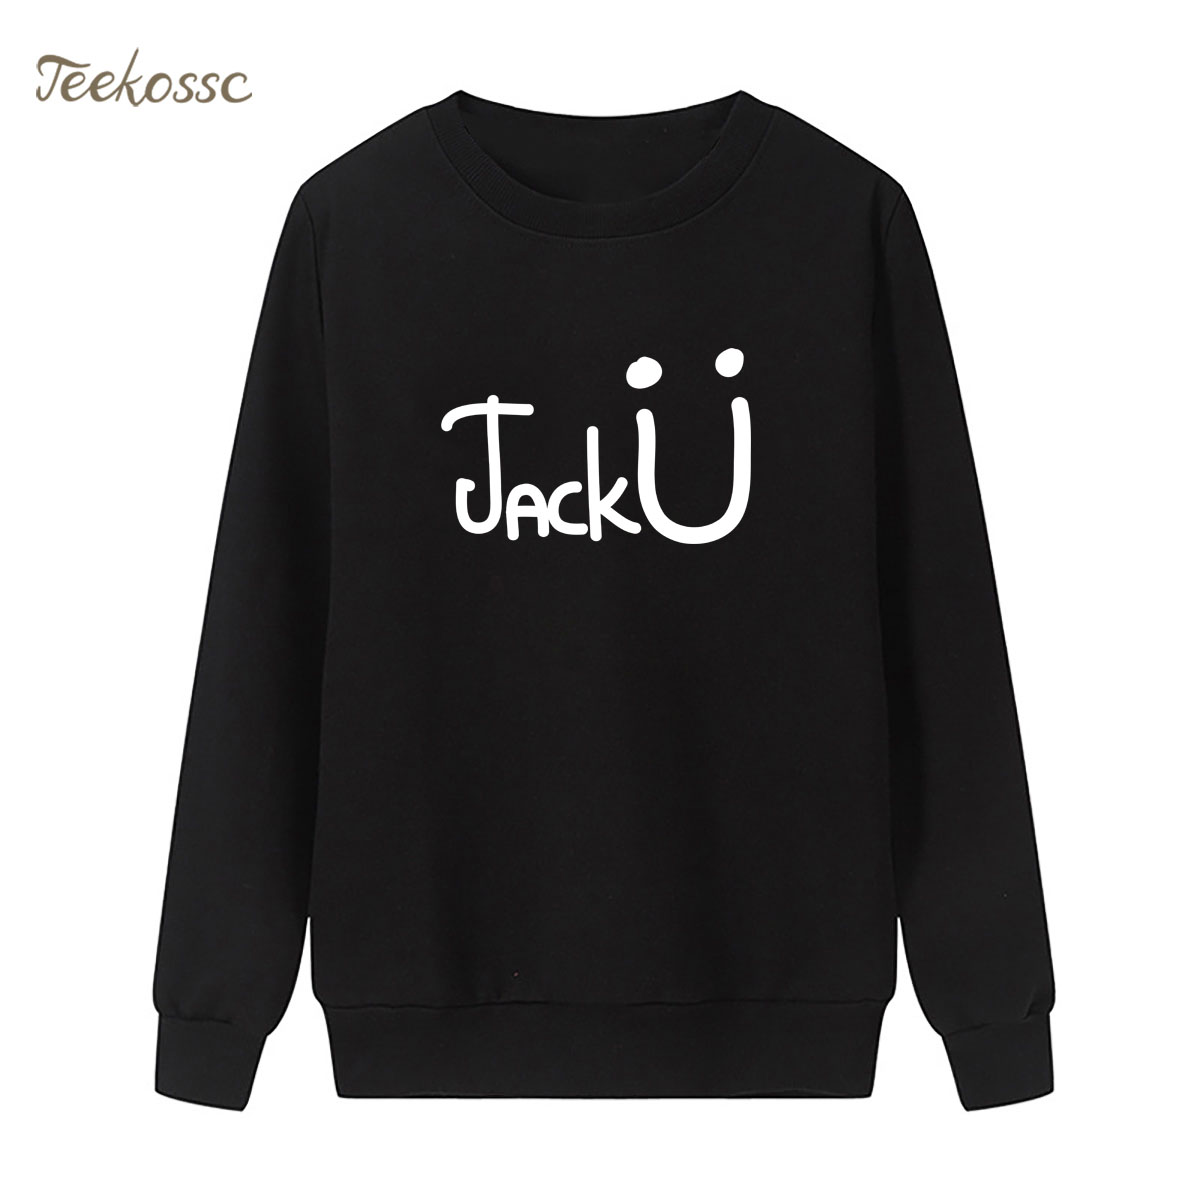 Jack U Sweatshirt Cute Hoodie 2018 Winter Autumn Women Lasdies Pullover Fleece Black White Streetwear Hipster Brand Clothing